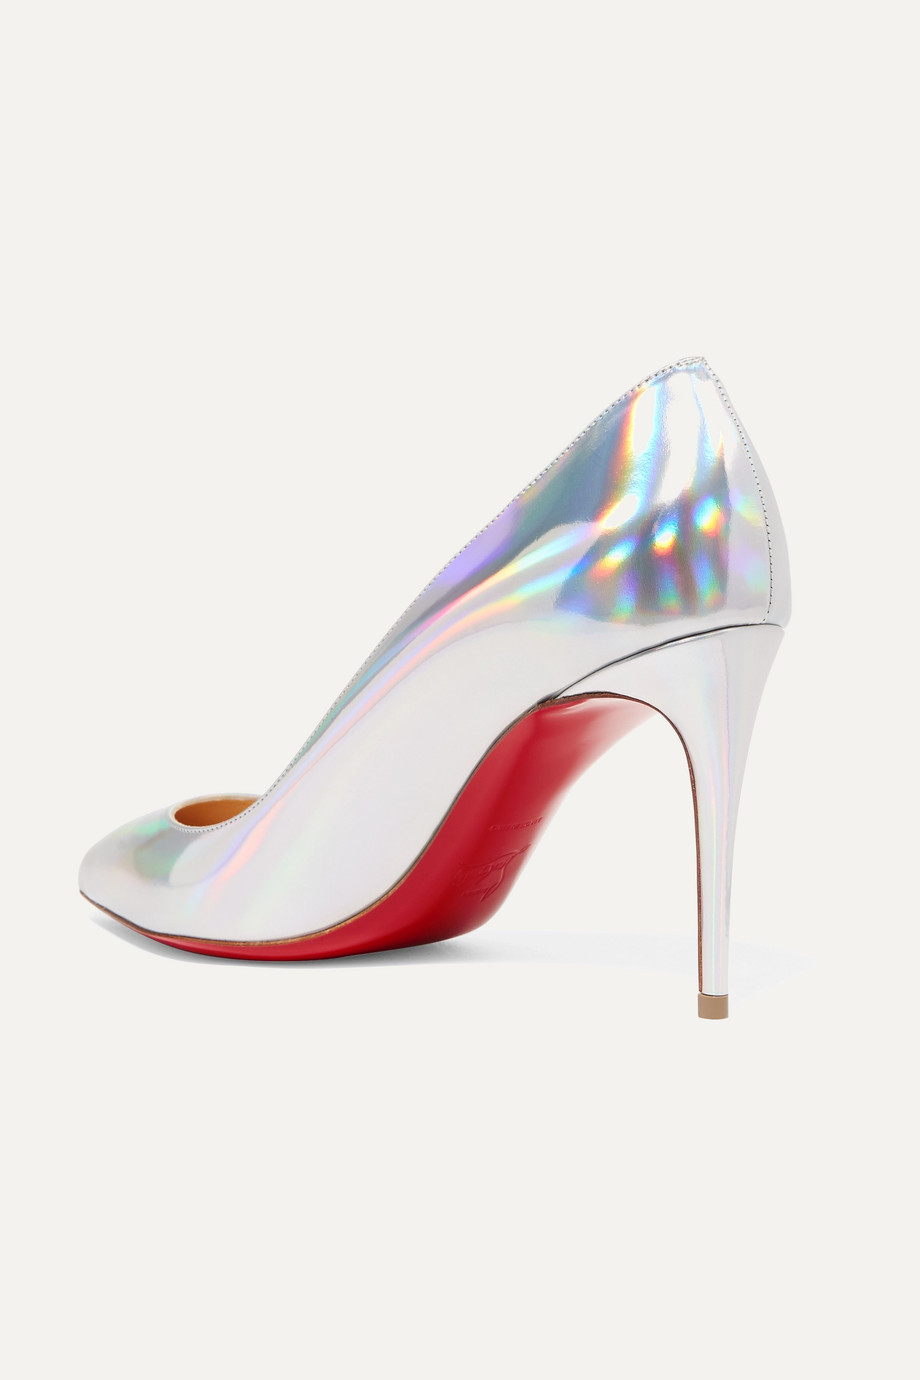 063fd6be6acd Christian Louboutin Pigalle Follies 85 iridescent leather pumps